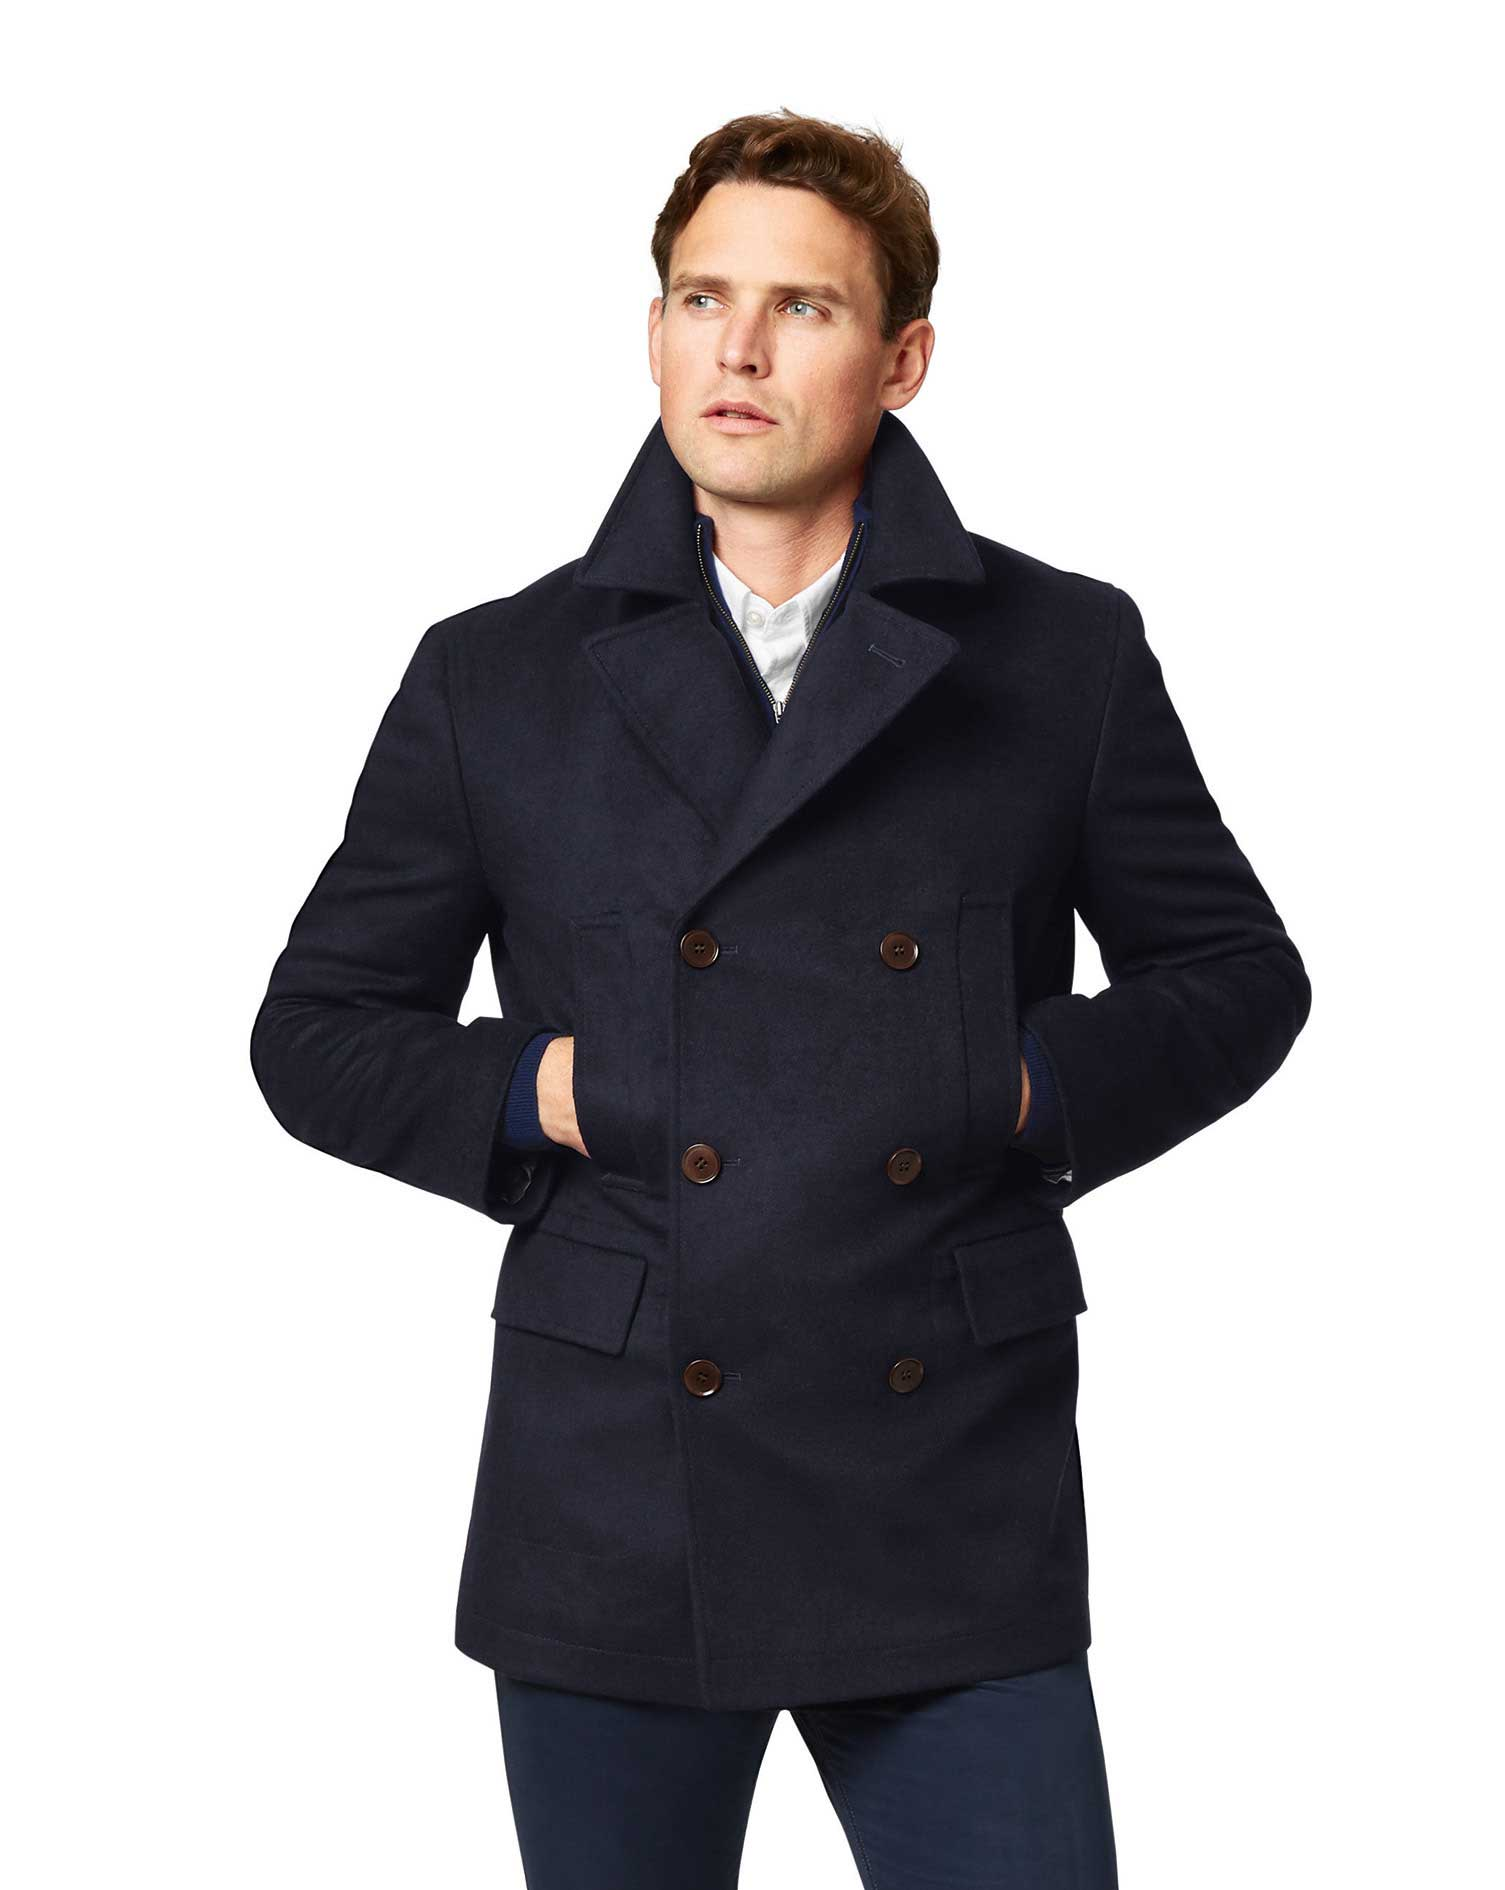 Navy Wool Cashmere Pea Coat Size 44 Regular by Charles Tyrwhitt